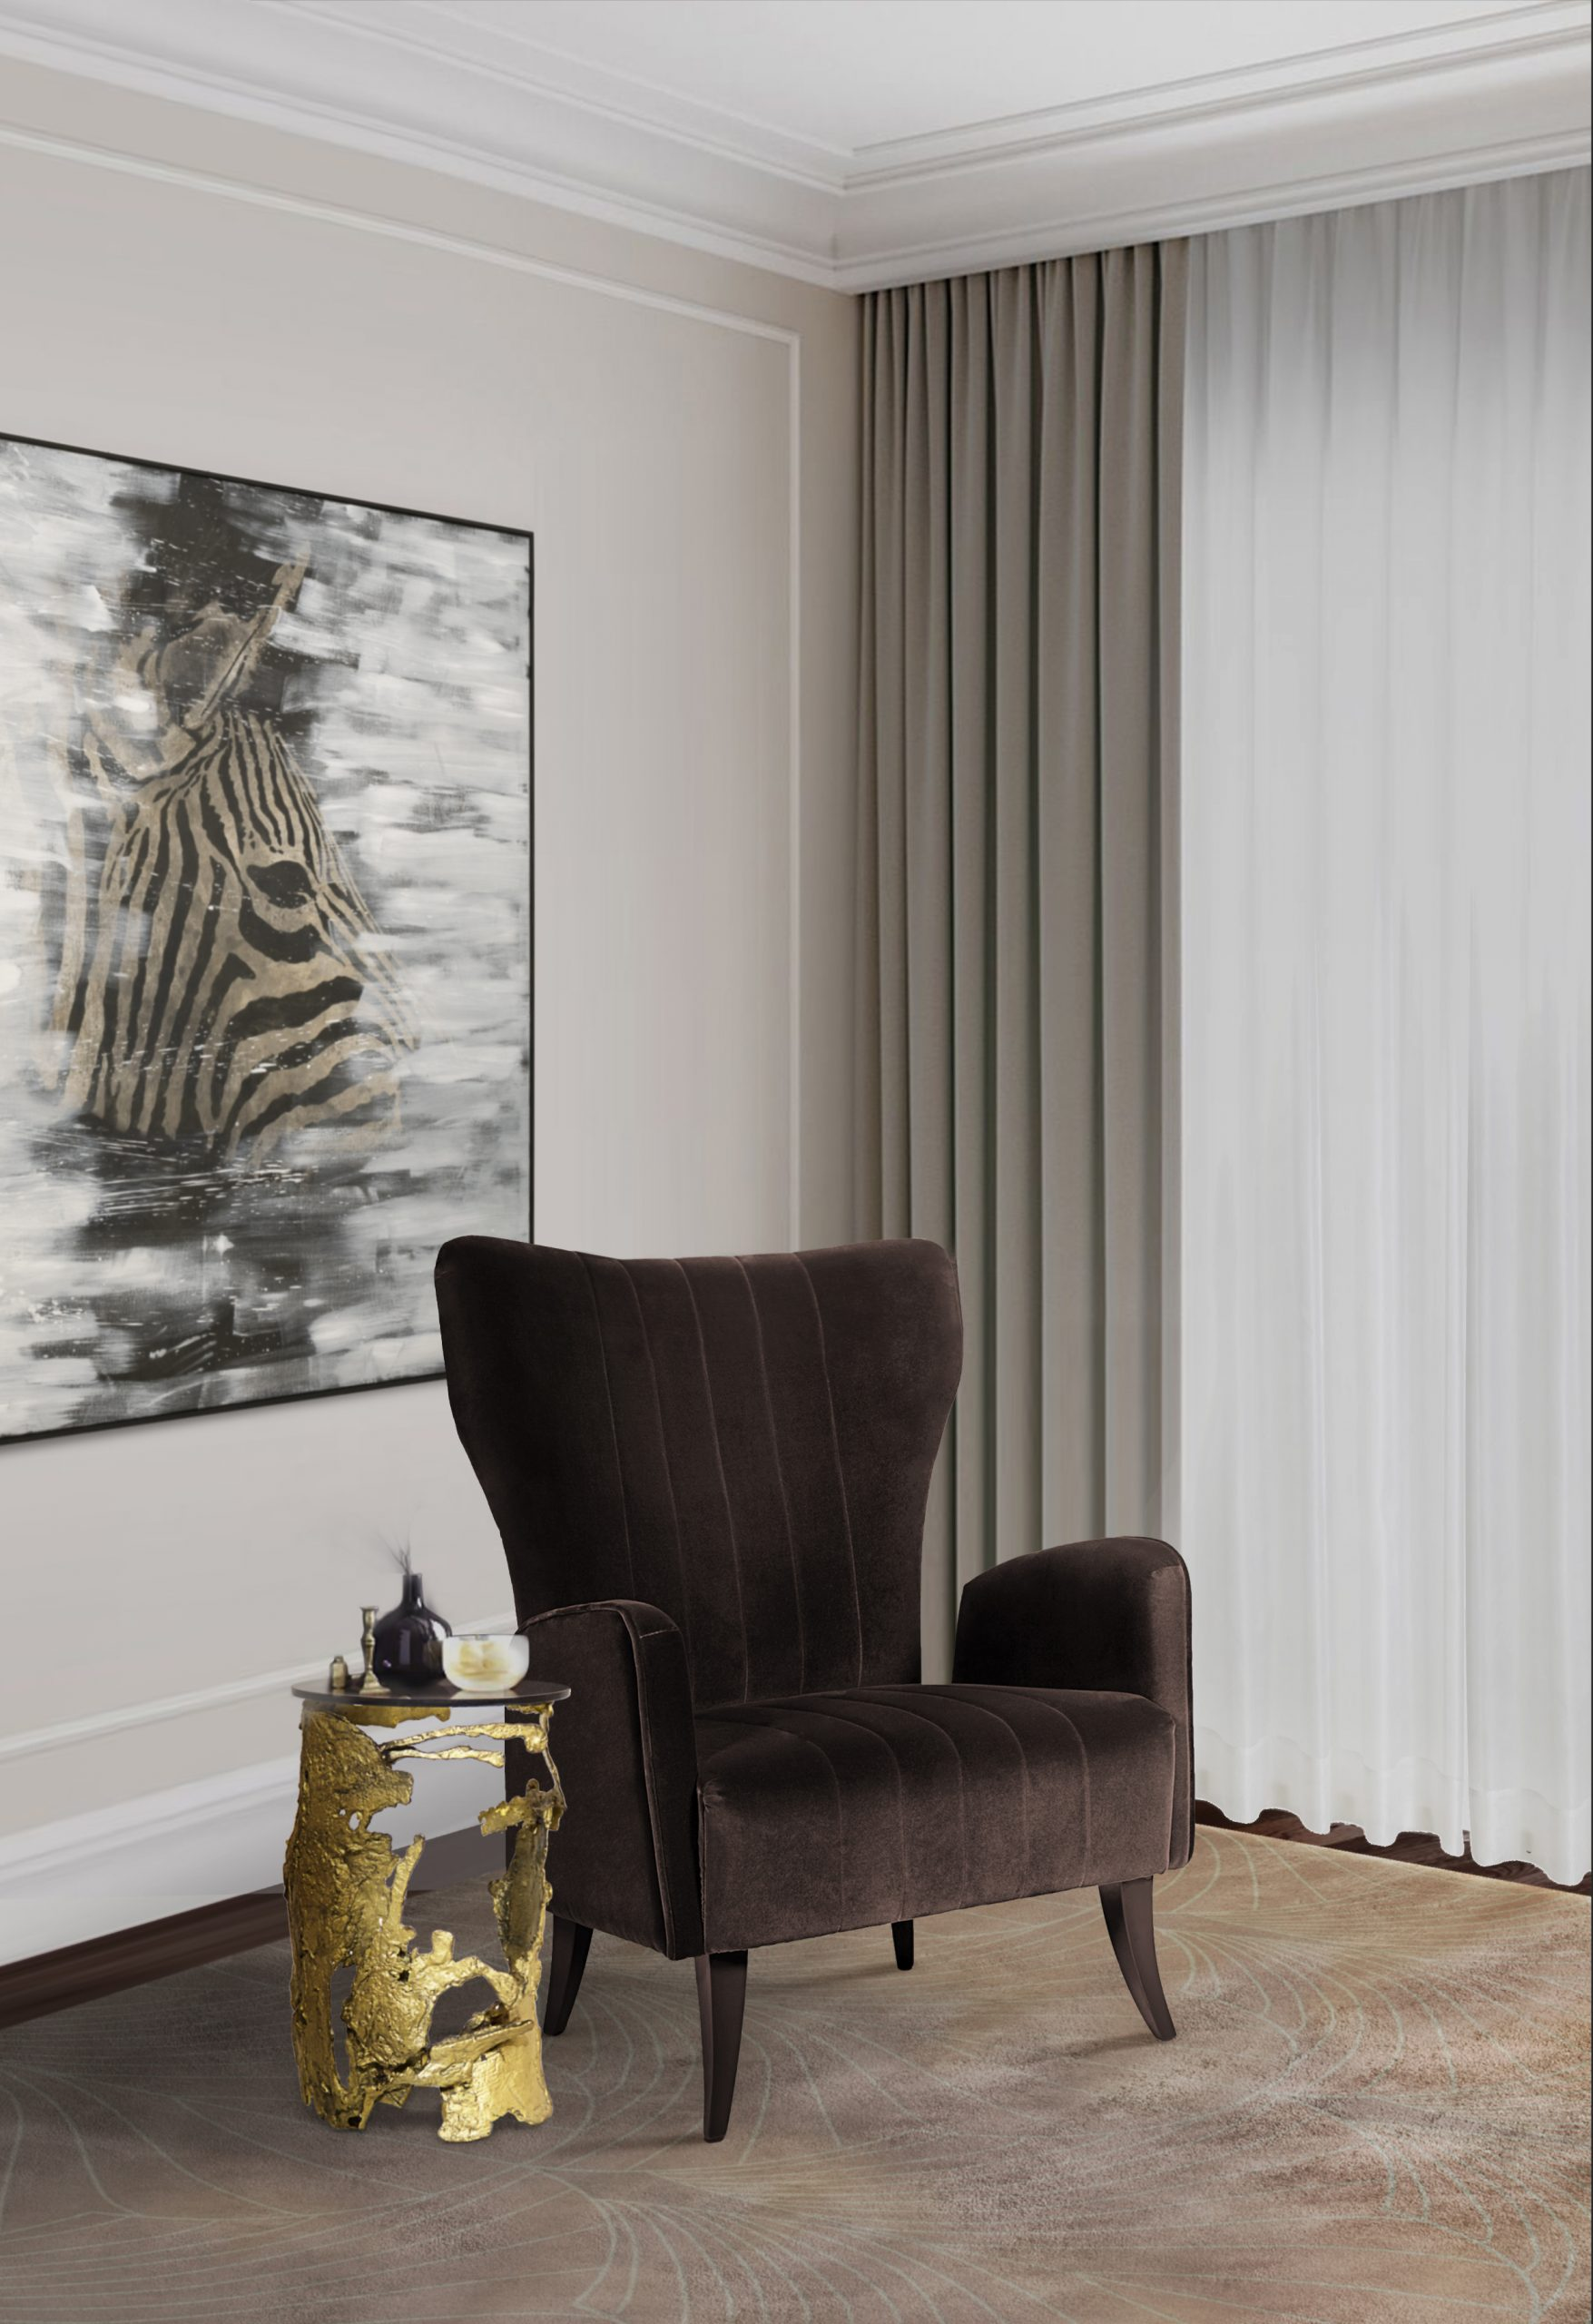 Accent Chairs: Tips On How To Choose A Chair To Make a Statement accent chairs Accent Chairs: Tips On How To Choose A Chair To Make a Statement BB cay side table davis armchair scaled